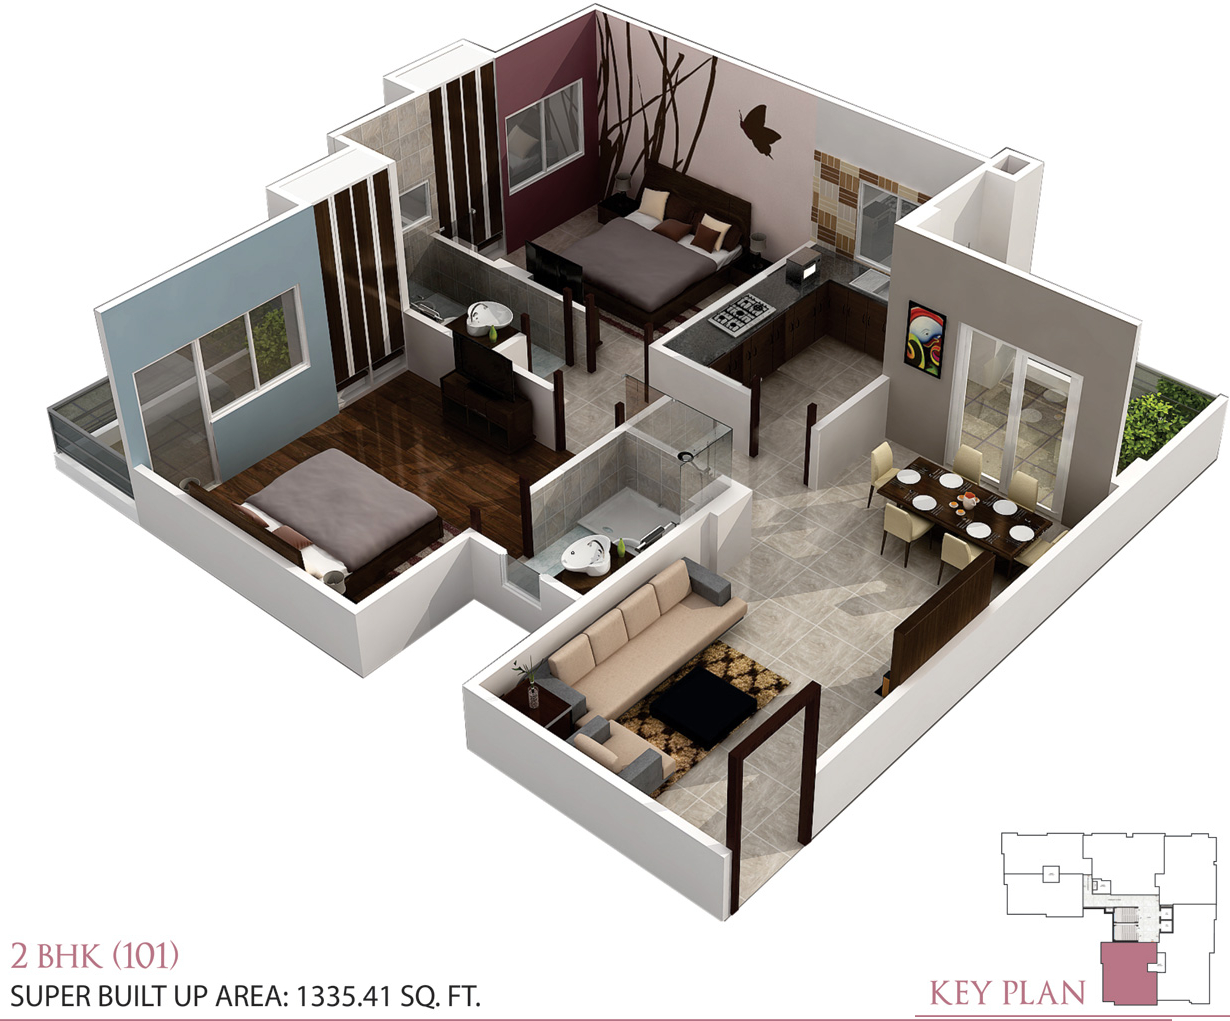 1227 Sq Ft 2 Bhk 2t Apartment For Sale In Kgk